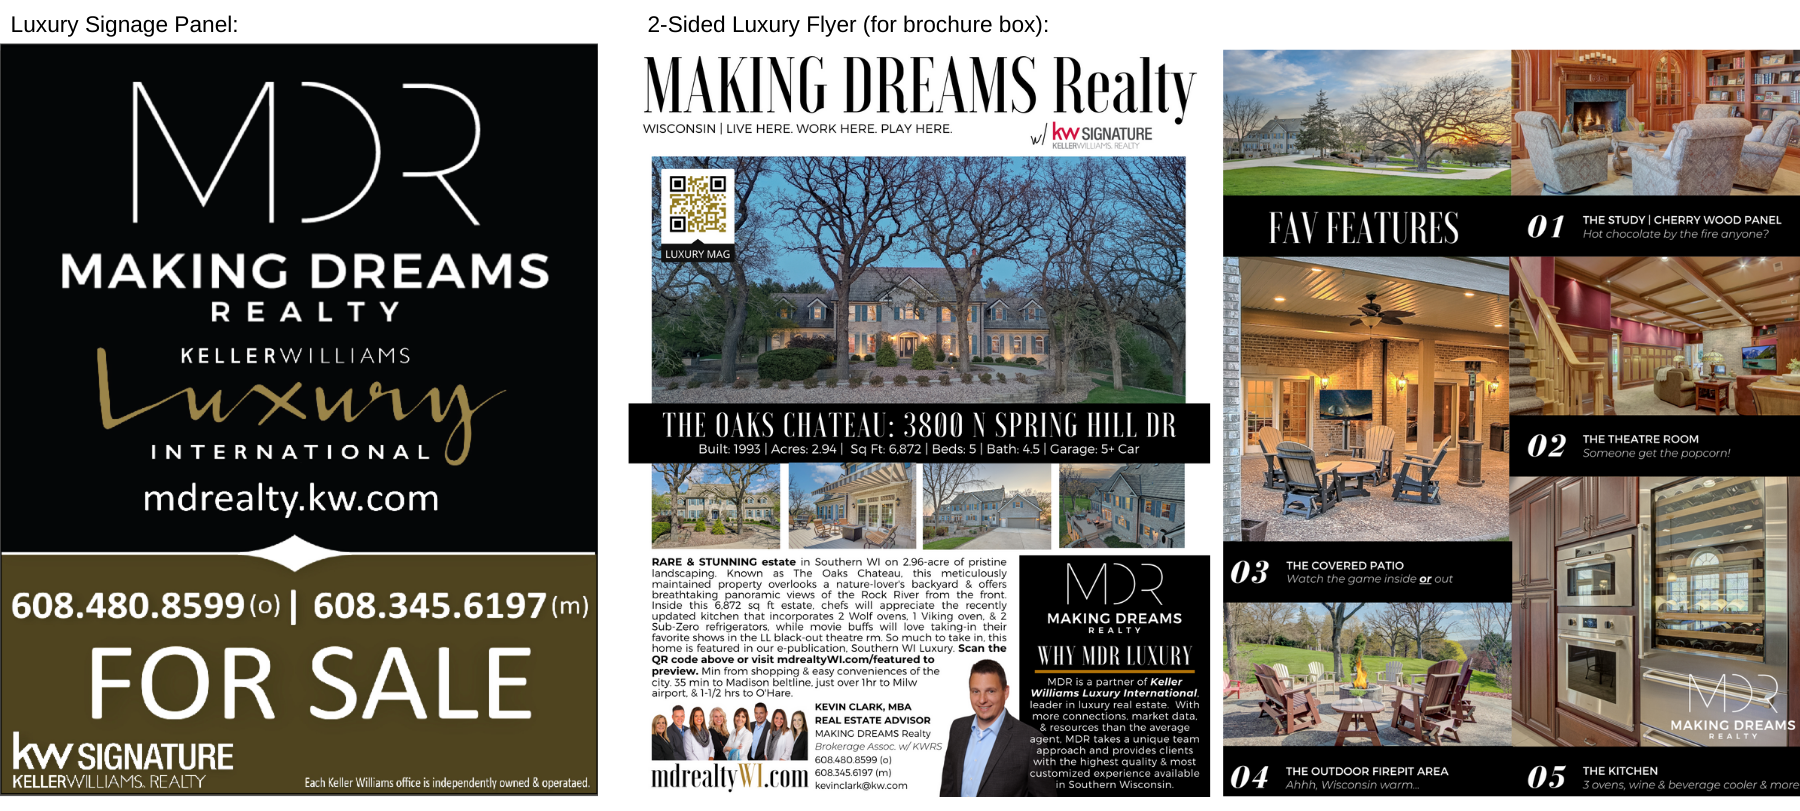 MAKING DREAMS Realty luxury division